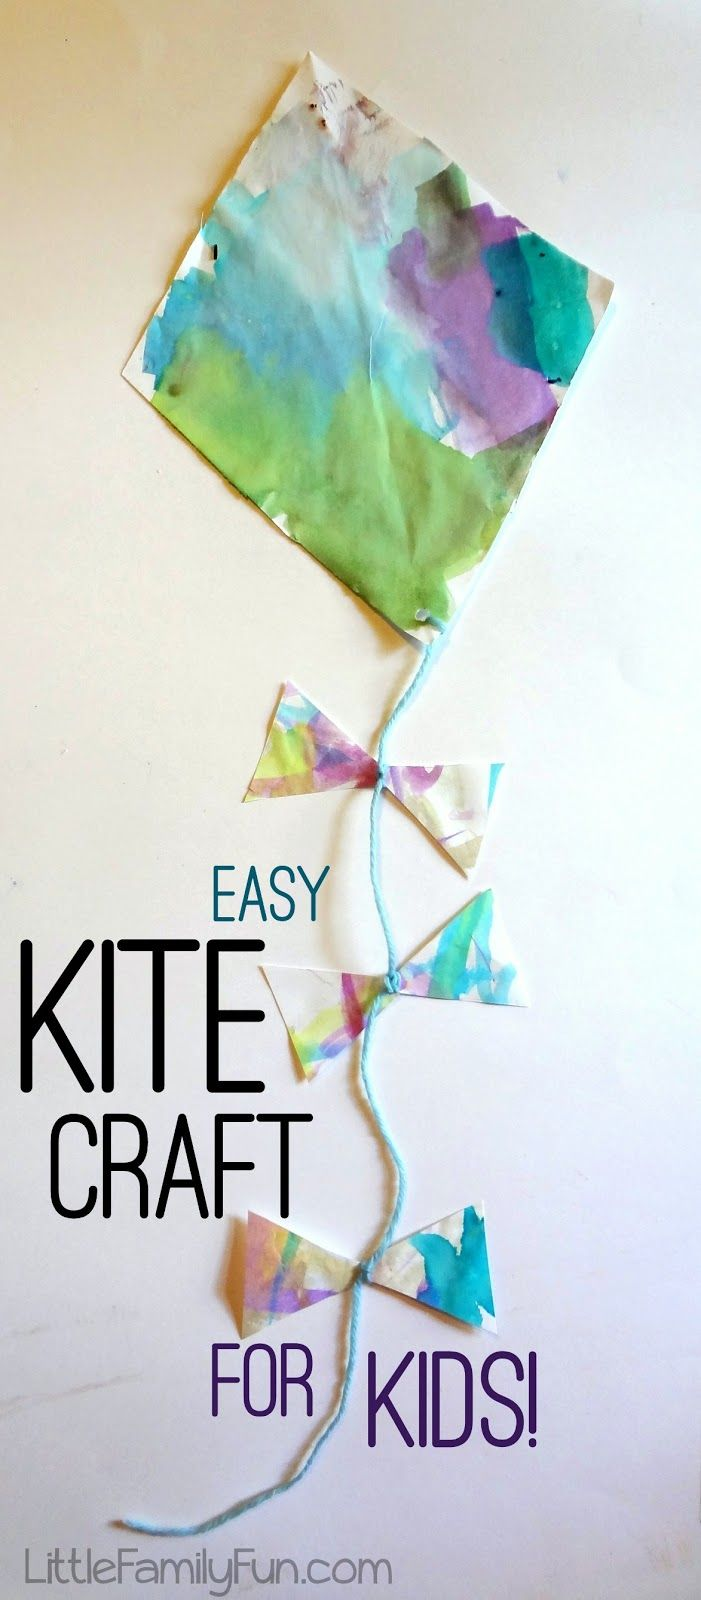 Easy Craft Ideas For Kids Pinterest Part - 36: Little Family Fun: Easy Kite Craft For Kids!